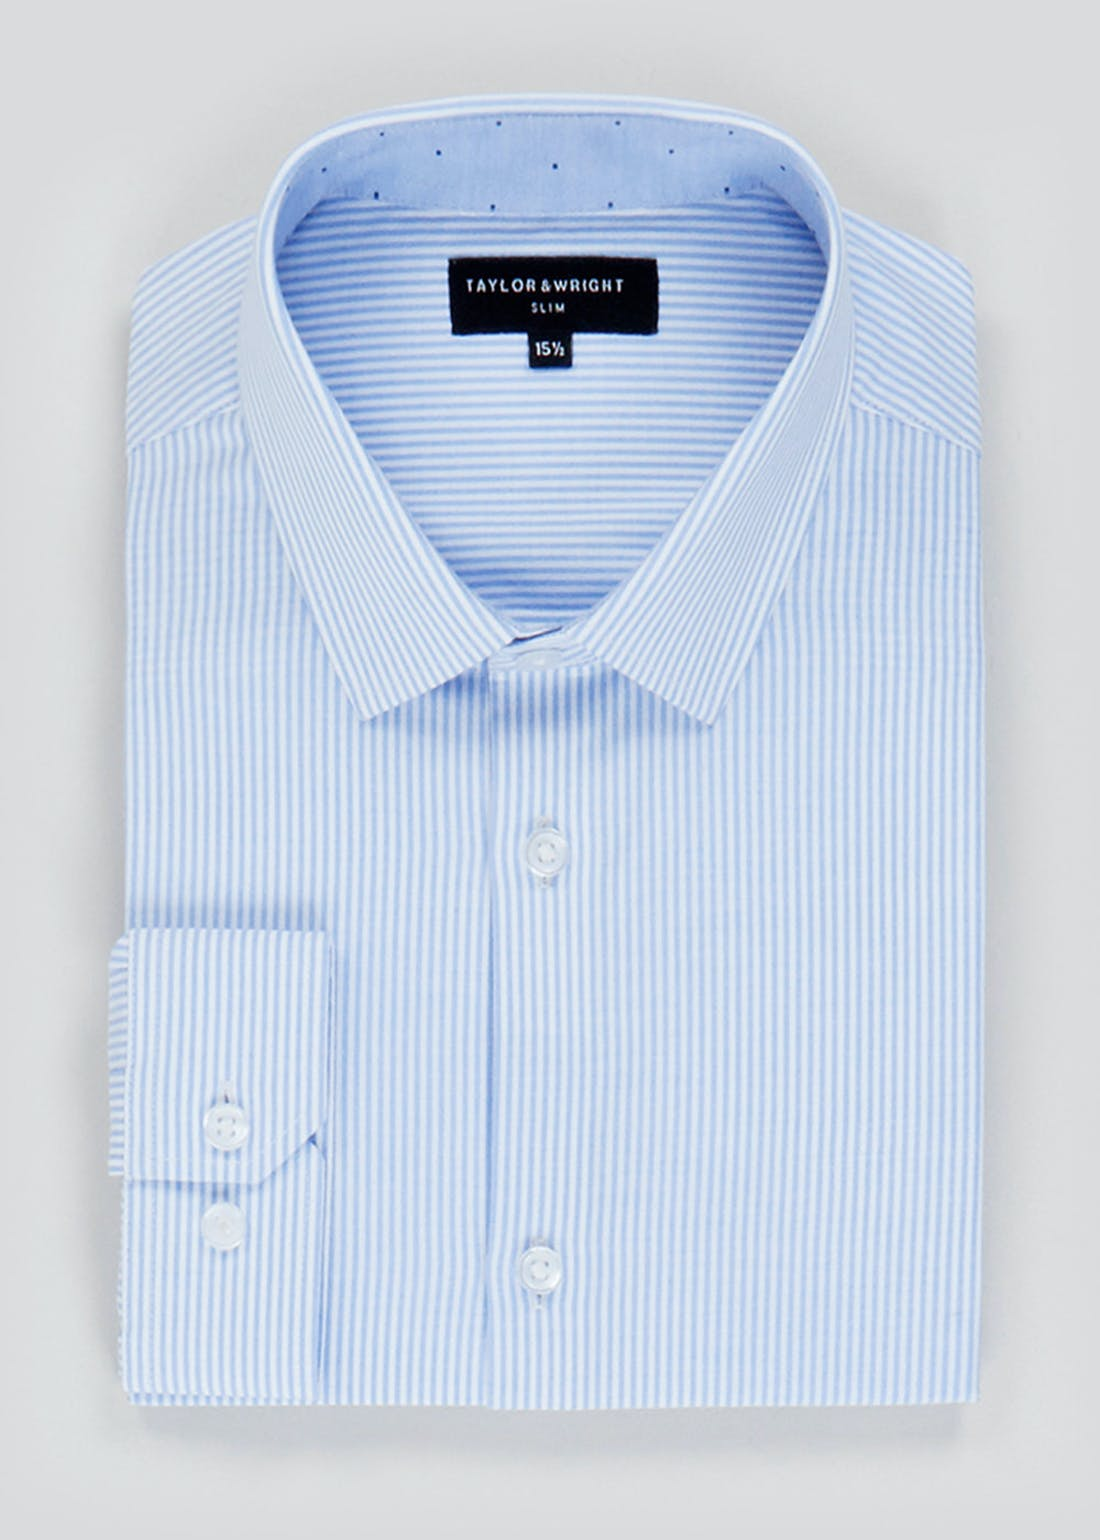 Taylor & Wright Long Sleeve Slim Fit Stripe Shirt